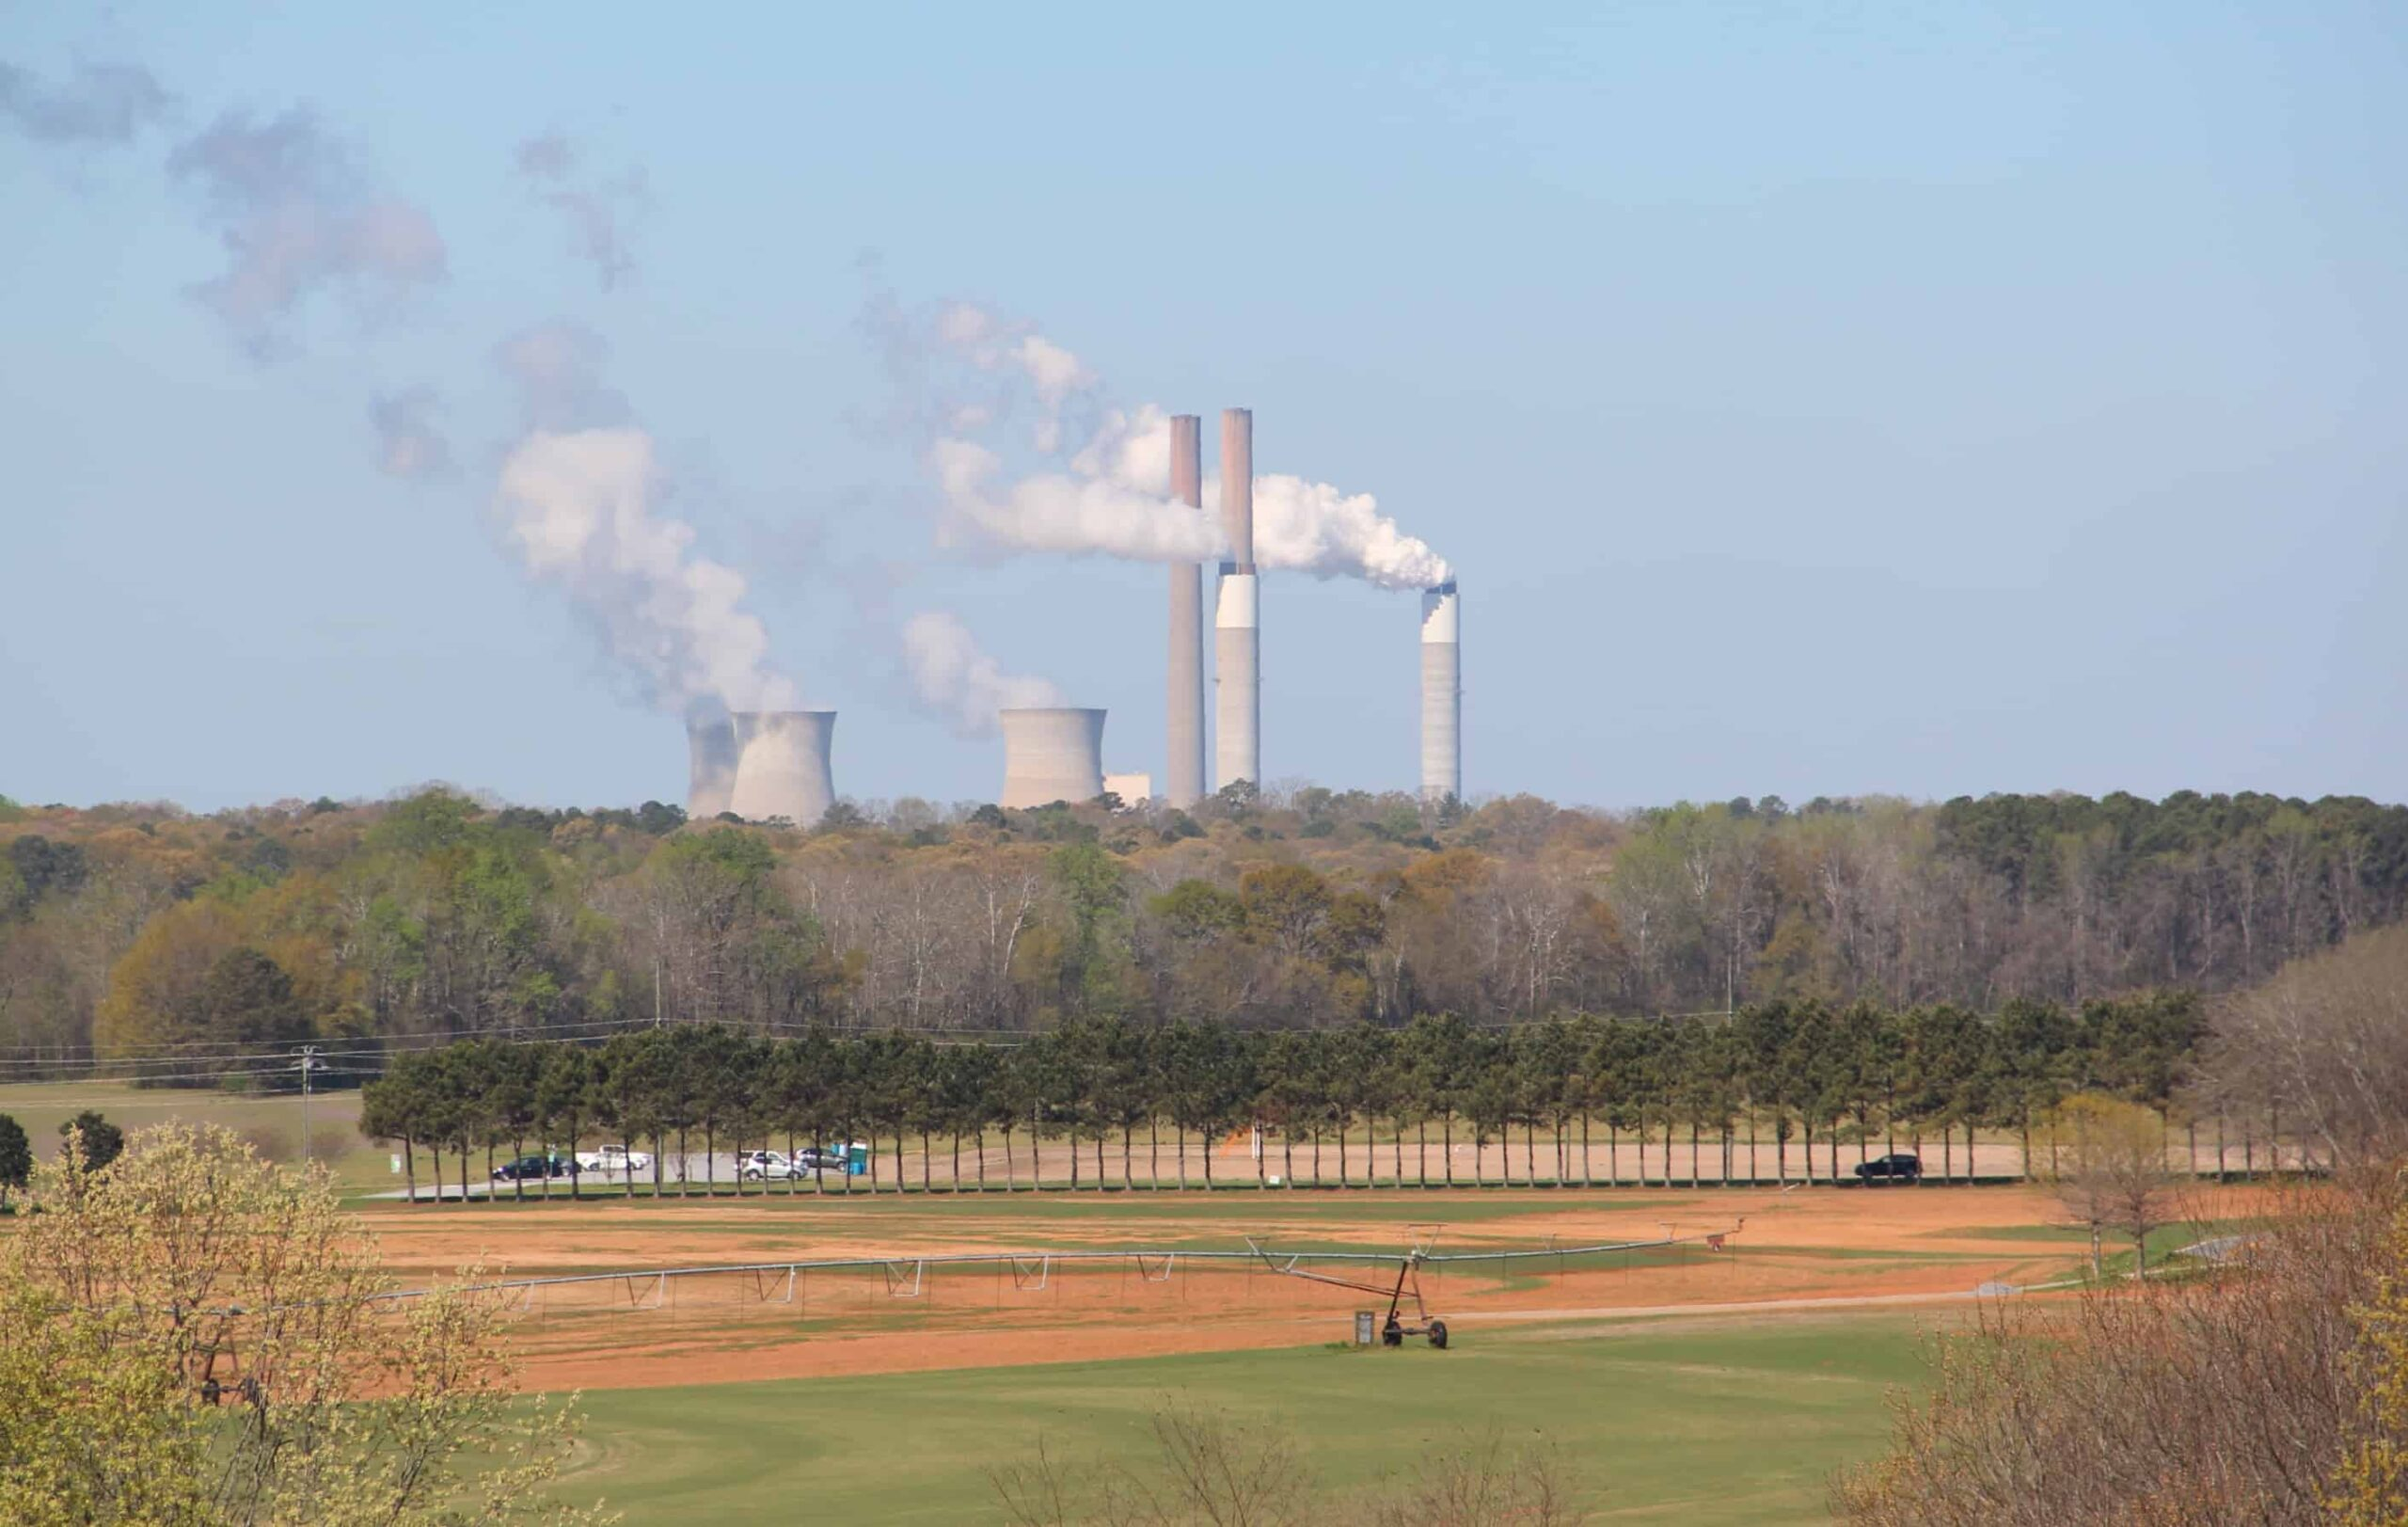 Georgia Power's 2019 IRP: Limit Renewables, Lock In Fossil